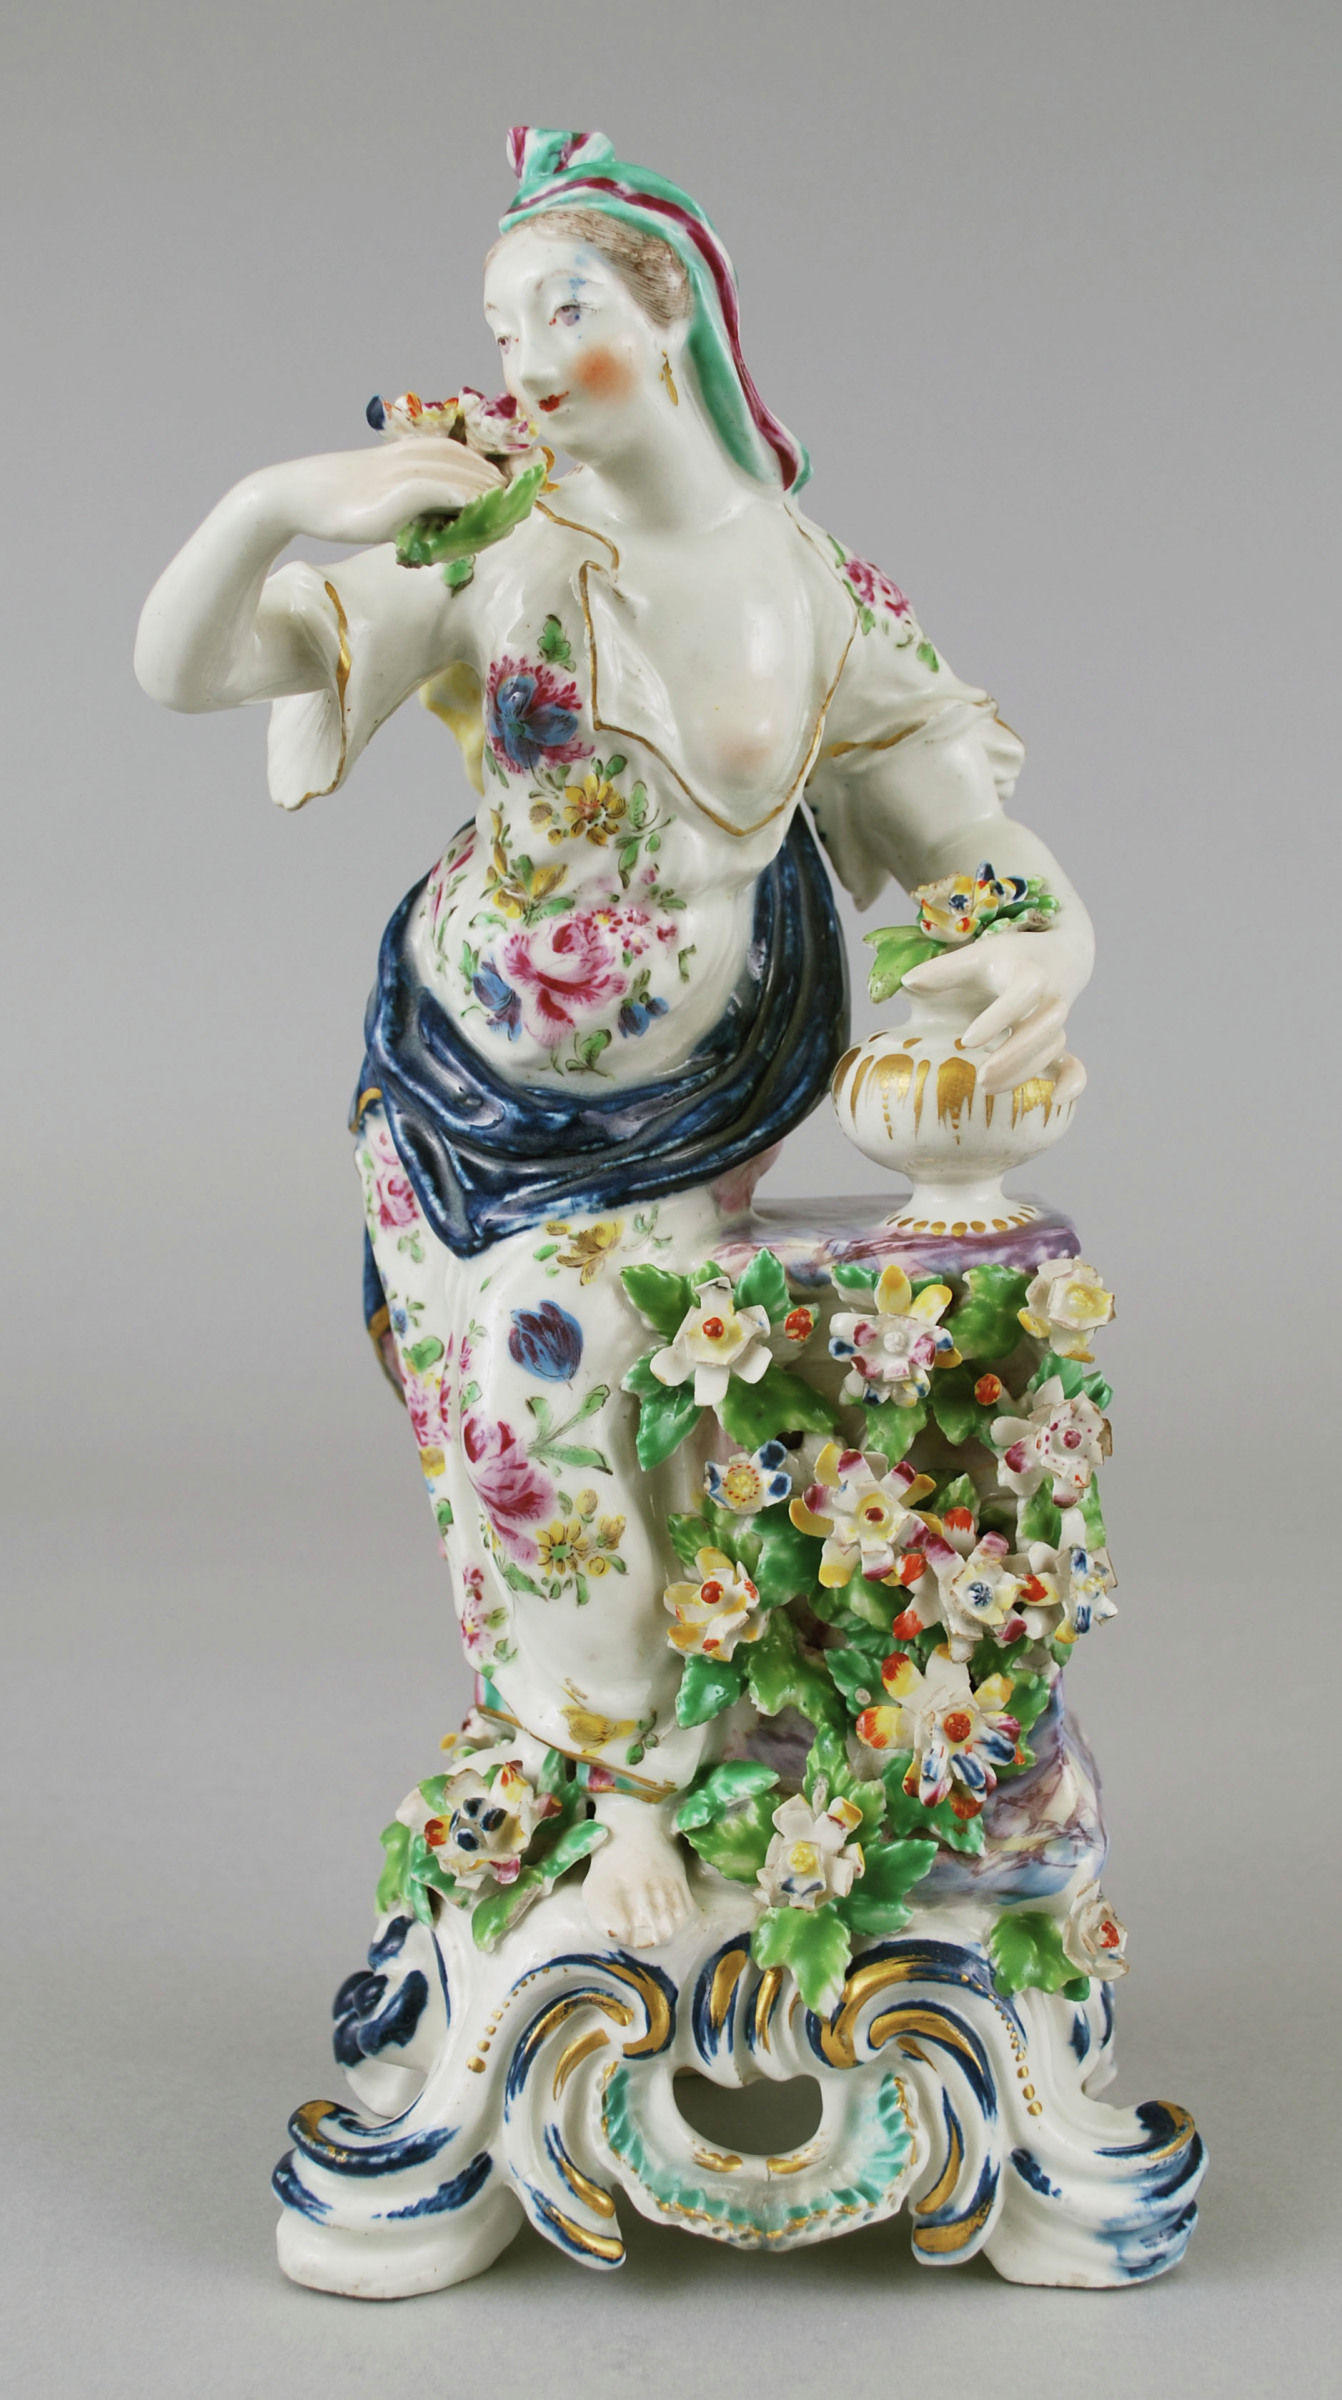 A Bow porcelain female figure standing on a painted scrolled base. She stands holding a bouquet of flowers in her right hand bent at the elbow towards her body. The other hand also holding flowers in resting on a short vase shaped vessel, possibly an incense burner that sits on a marbled pedestal covered with flowers and leaves from the front. Her dress is painted in various colored flowers with a blue and rose colored sash wrapped around her waist and back. The hair has green and burgundy colored ribbons painted.